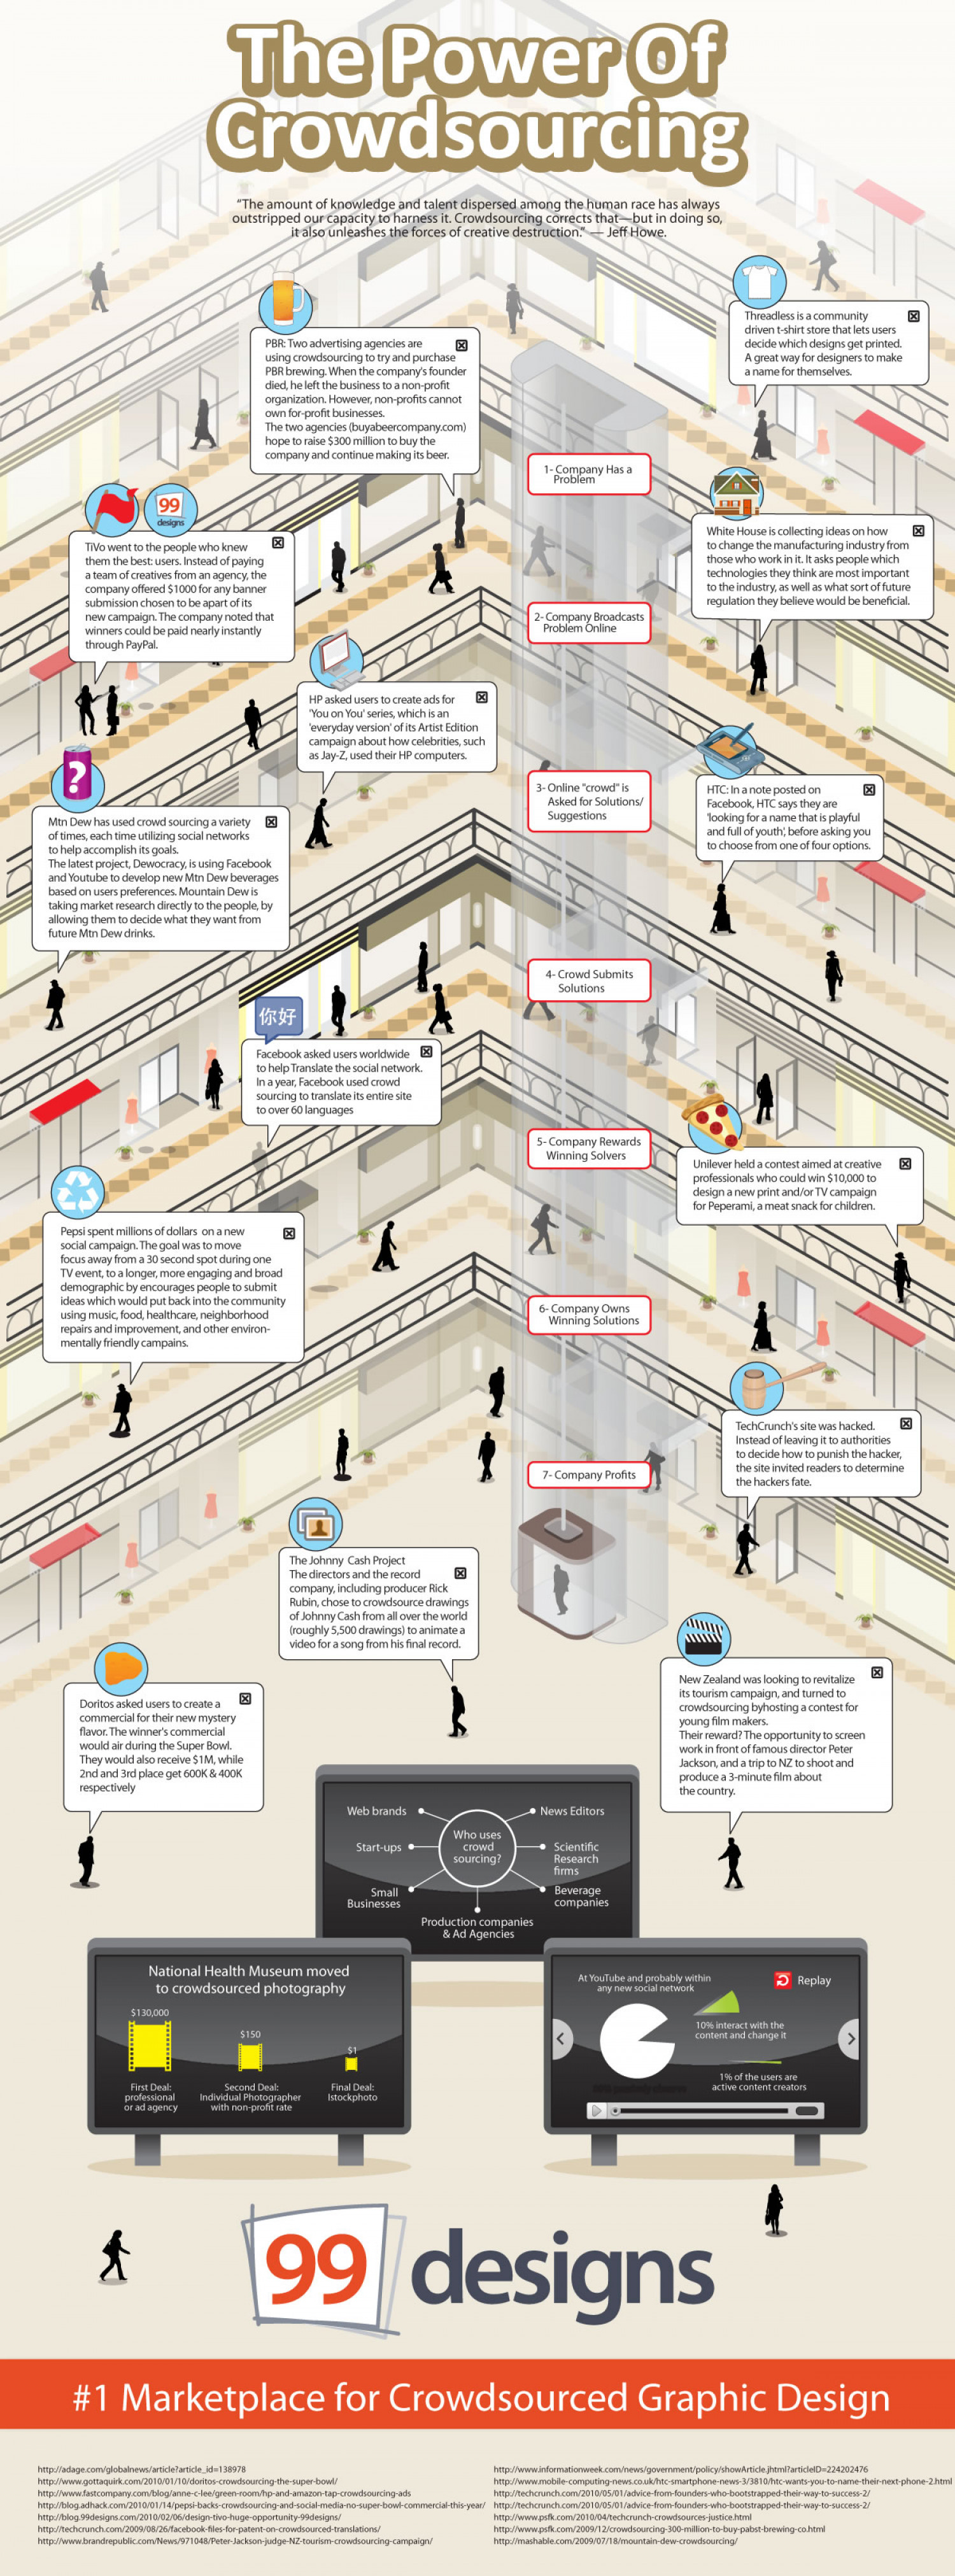 The Power of Crowdsourcing  Infographic